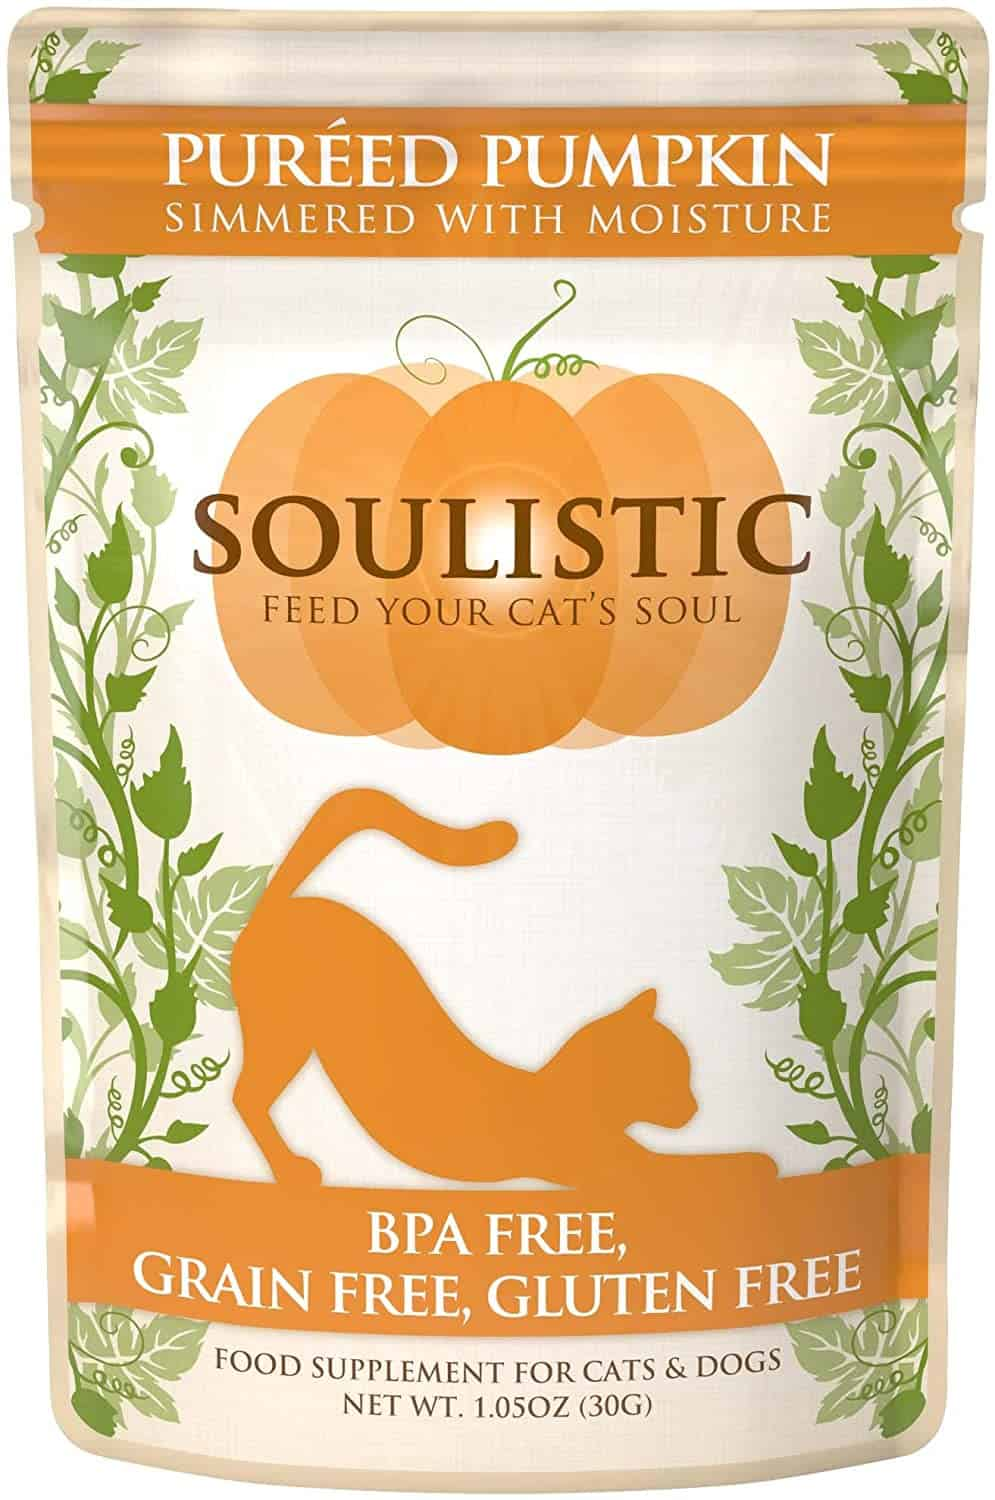 Soulistic Cat Food Review 2021: The Top Choice For Picky Kitties! 7